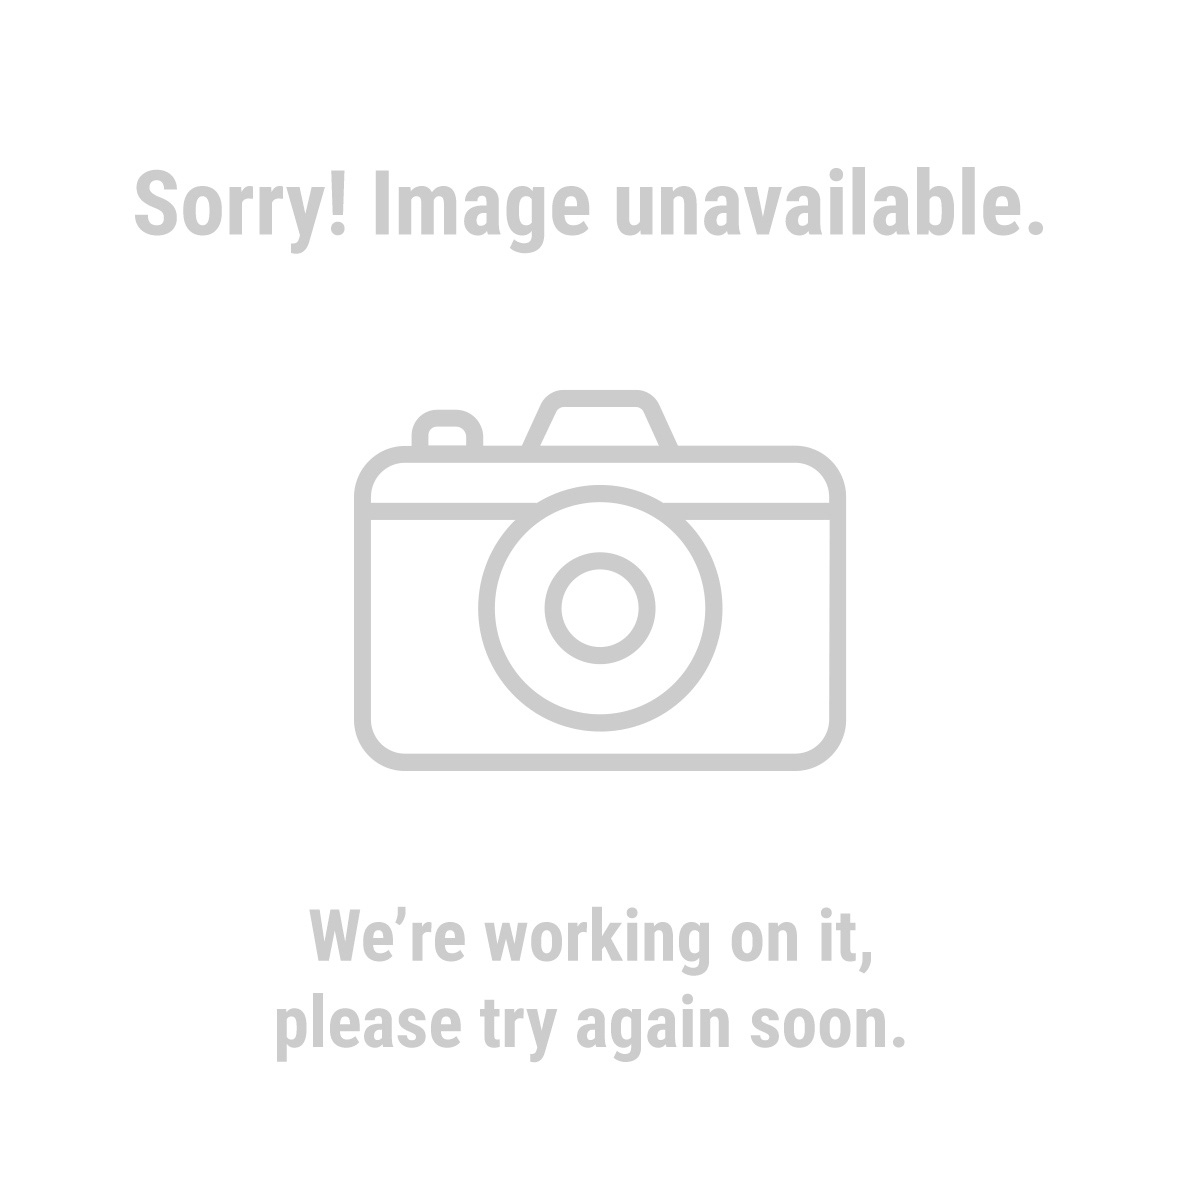 HFT 60466 17-1/6 ft. X 23-1/3 ft. All Purpose Weather Resistant Tarp